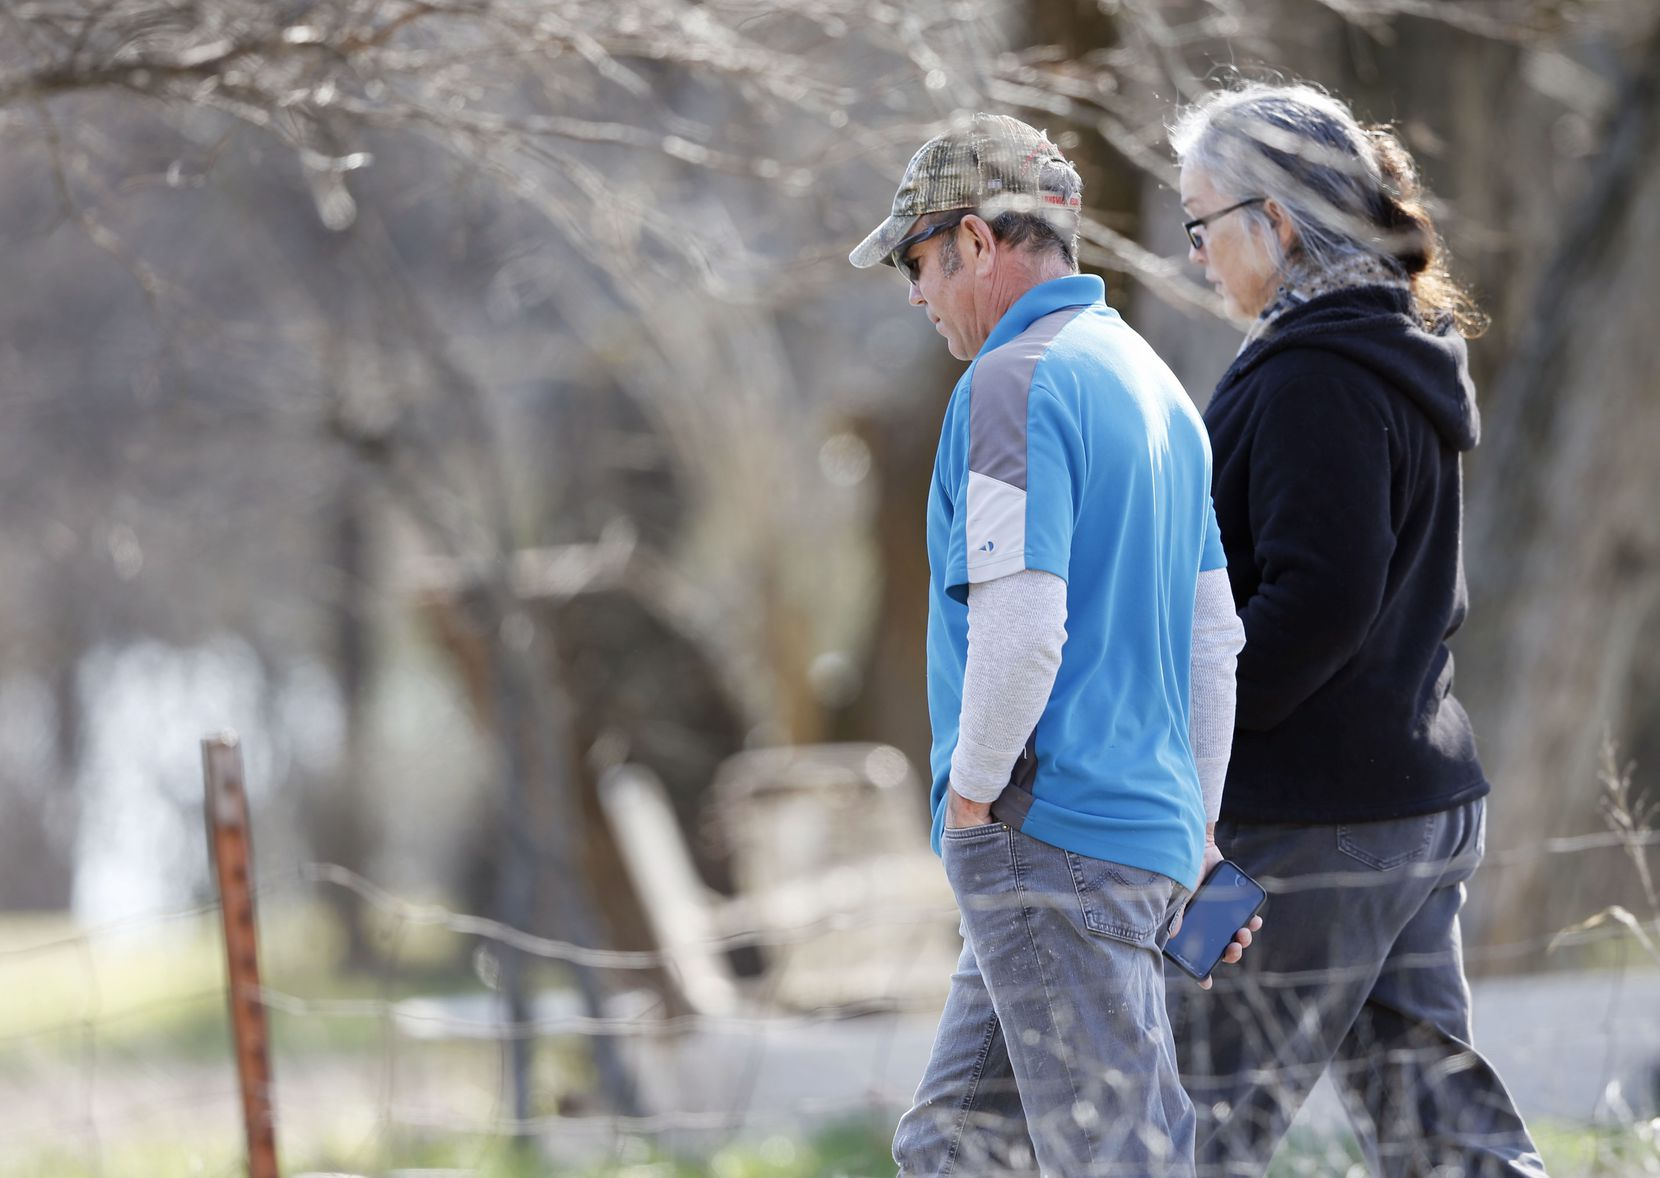 Mark Morris, father of Christina Morris, walked with Marietta Schell on her property as police investigated skeletal remains found nearby.